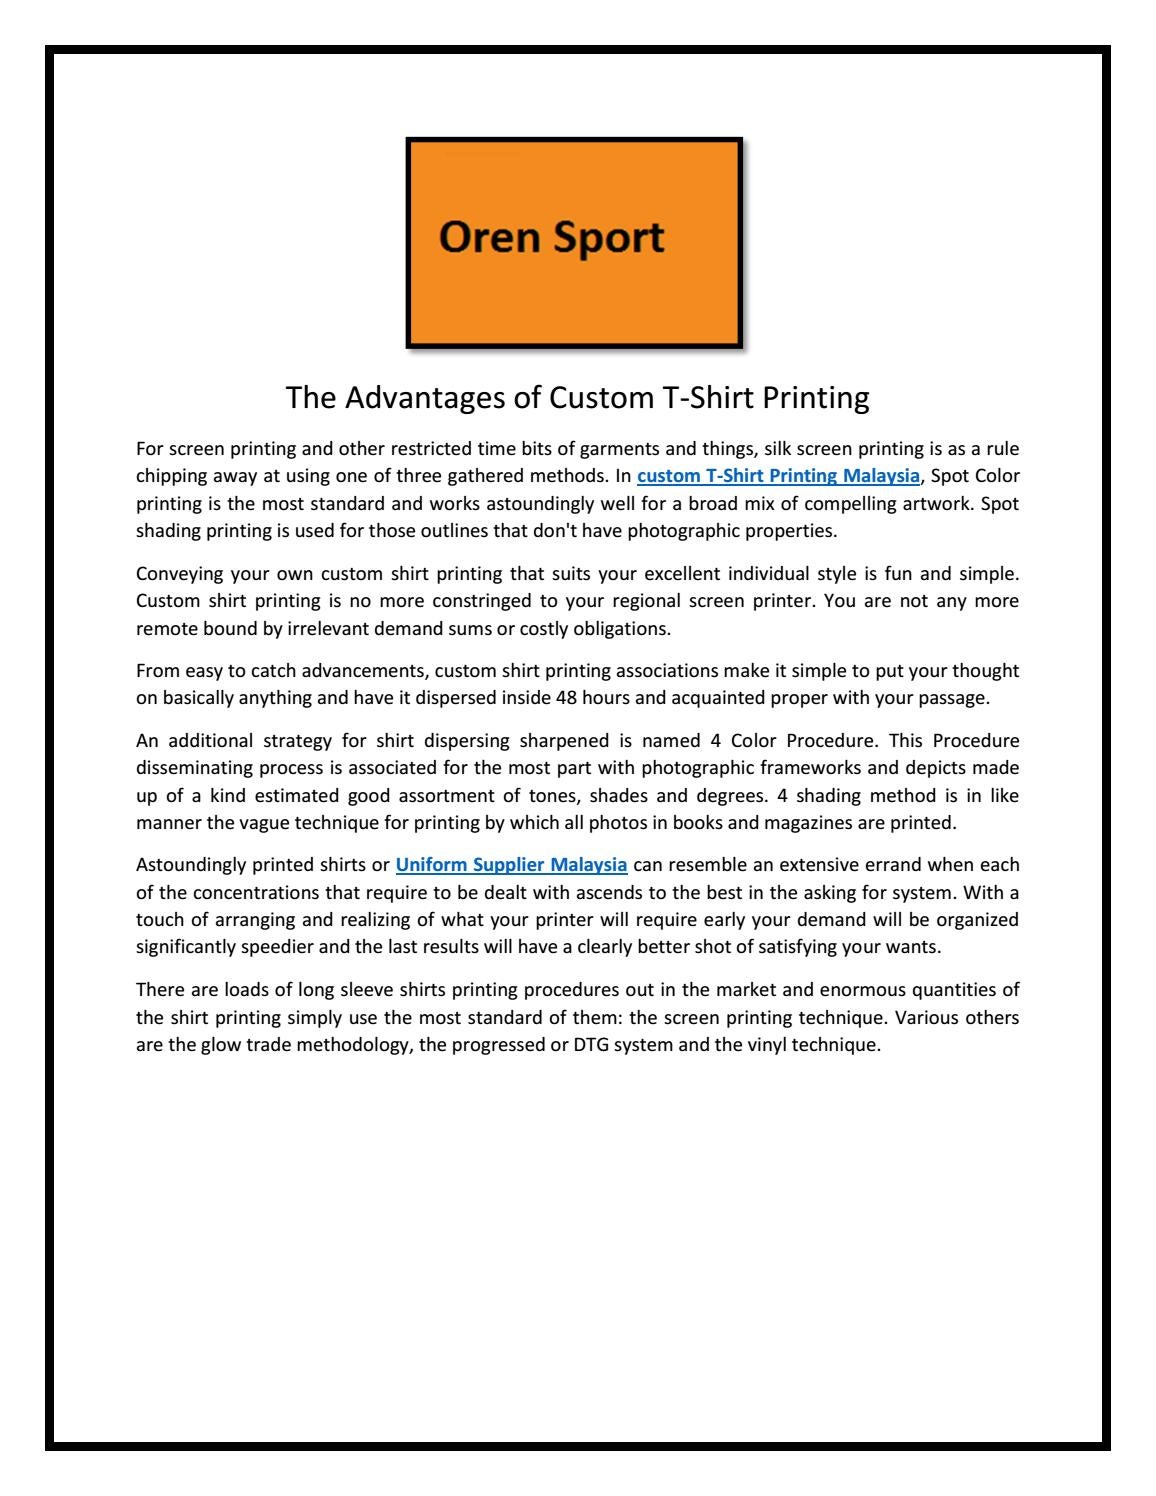 d8ad8c22 The Advantages of Custom T-Shirt Printing by Oren Sport - issuu